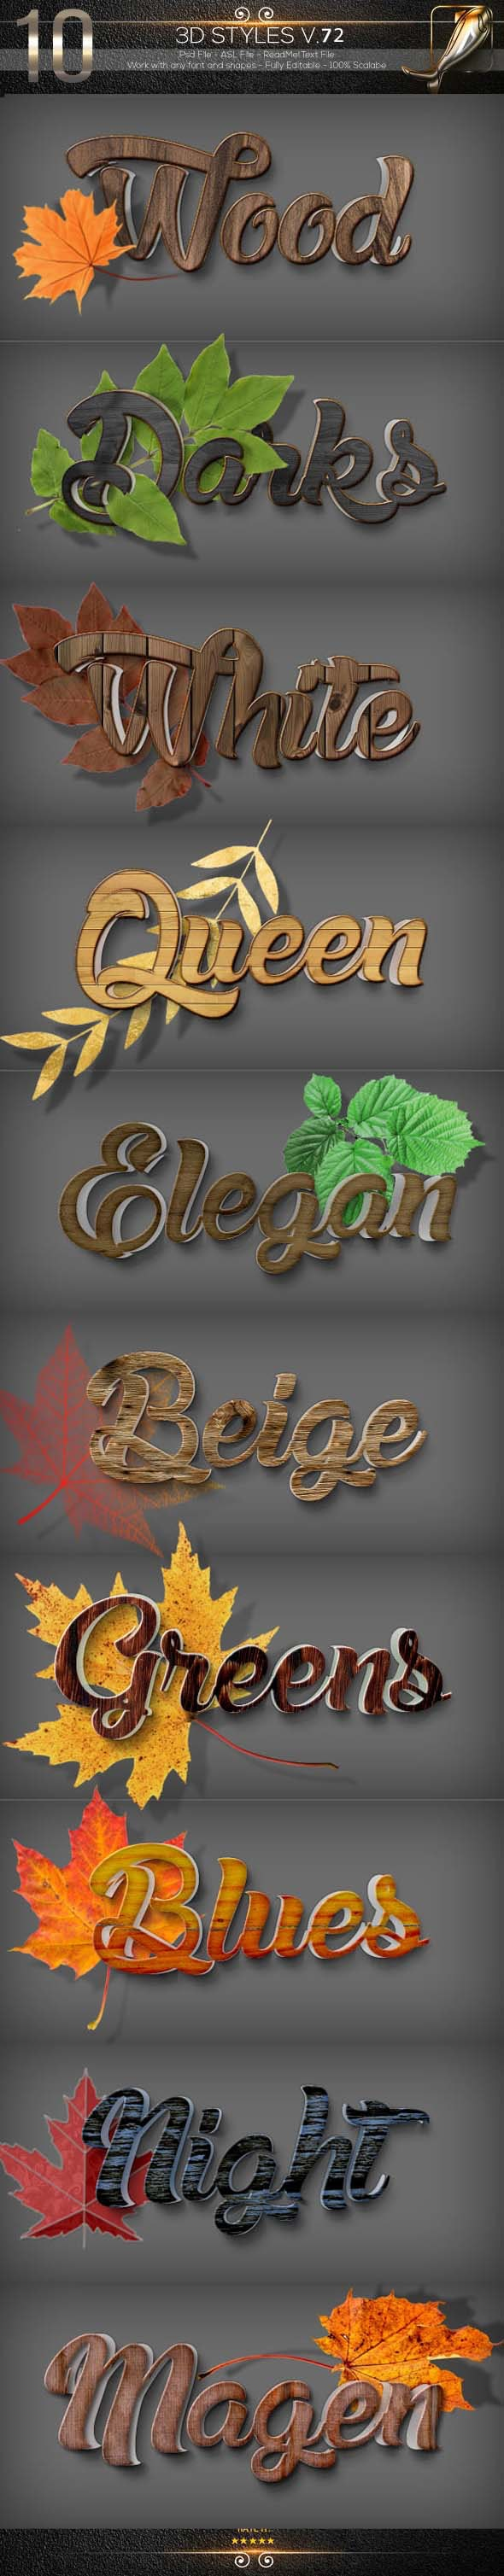 10 3D Text Styles D_72 - Text Effects Actions